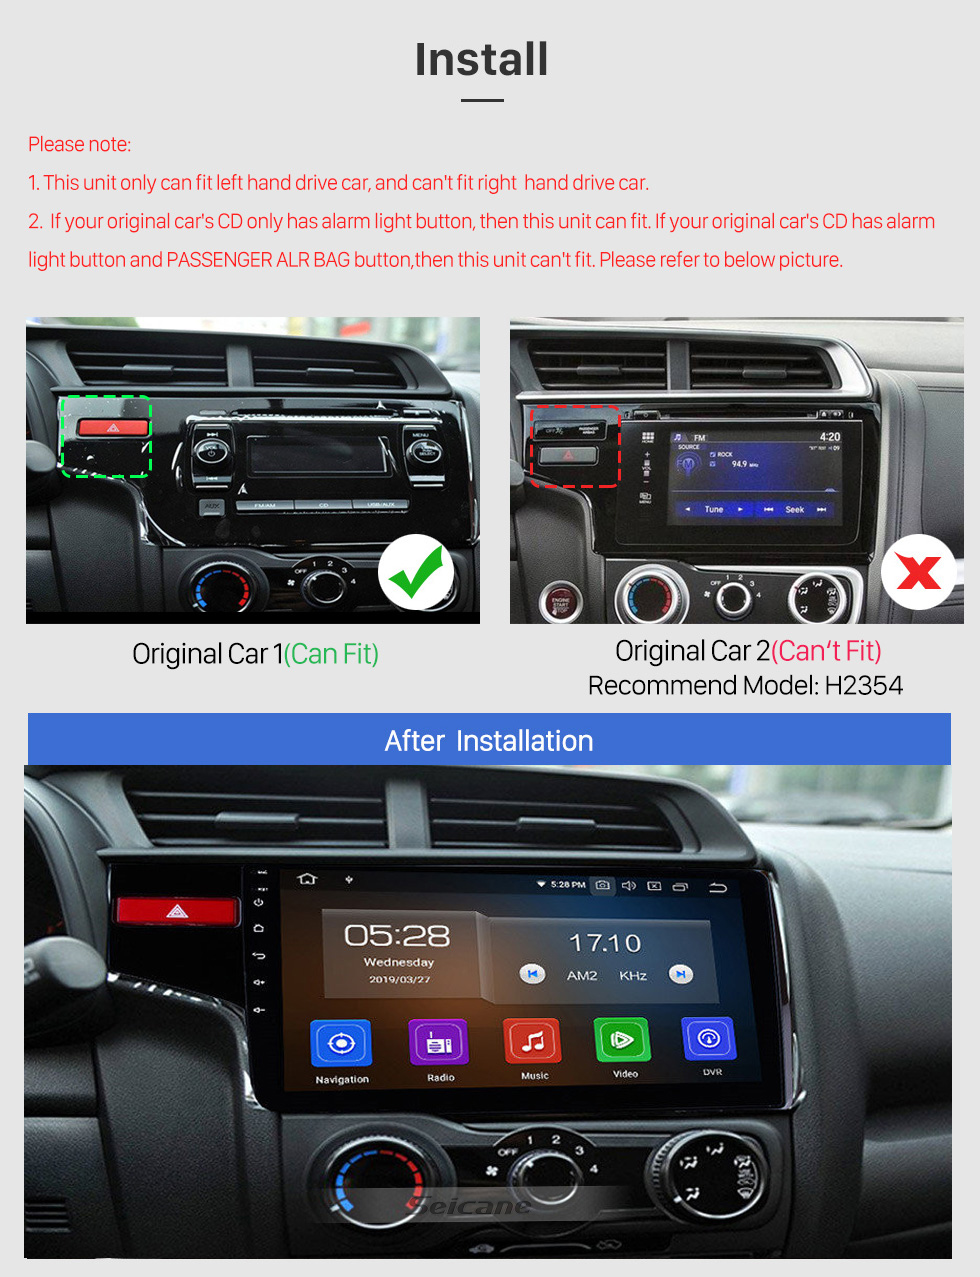 Seicane 10.1 Inch OEM Android 10.0 Radio Capacitive Touch Screen For 2014 2015 Honda FIT Support WiFi Bluetooth GPS Navigation system TPMS DVR OBD II AUX Headrest Monitor Control Video Rear camera USB SD